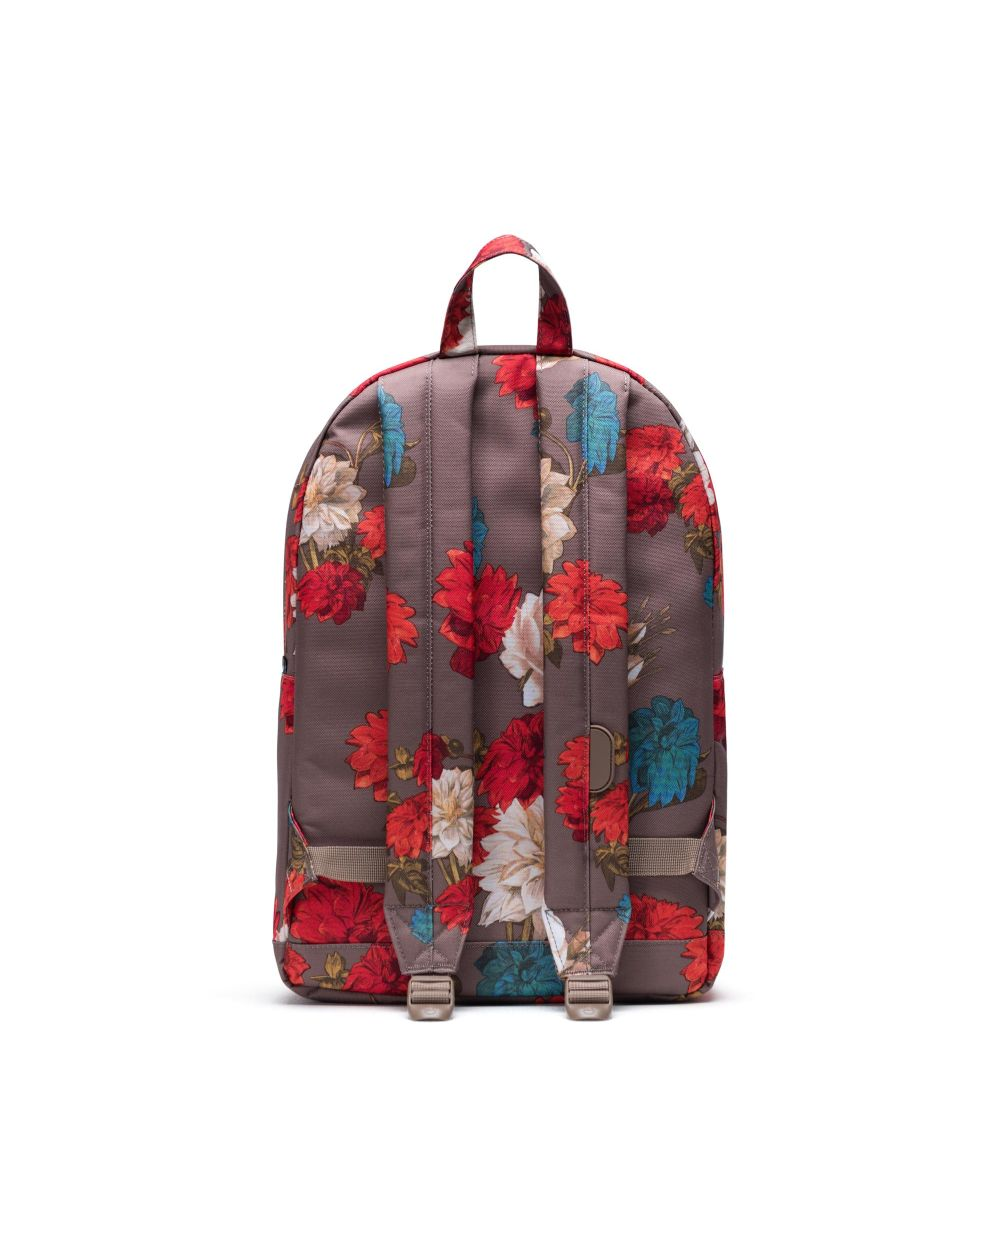 HERSCHEL BACKPACKS POP QUIZ BACKPACK - VINTAGE FLORAL PINE BARK